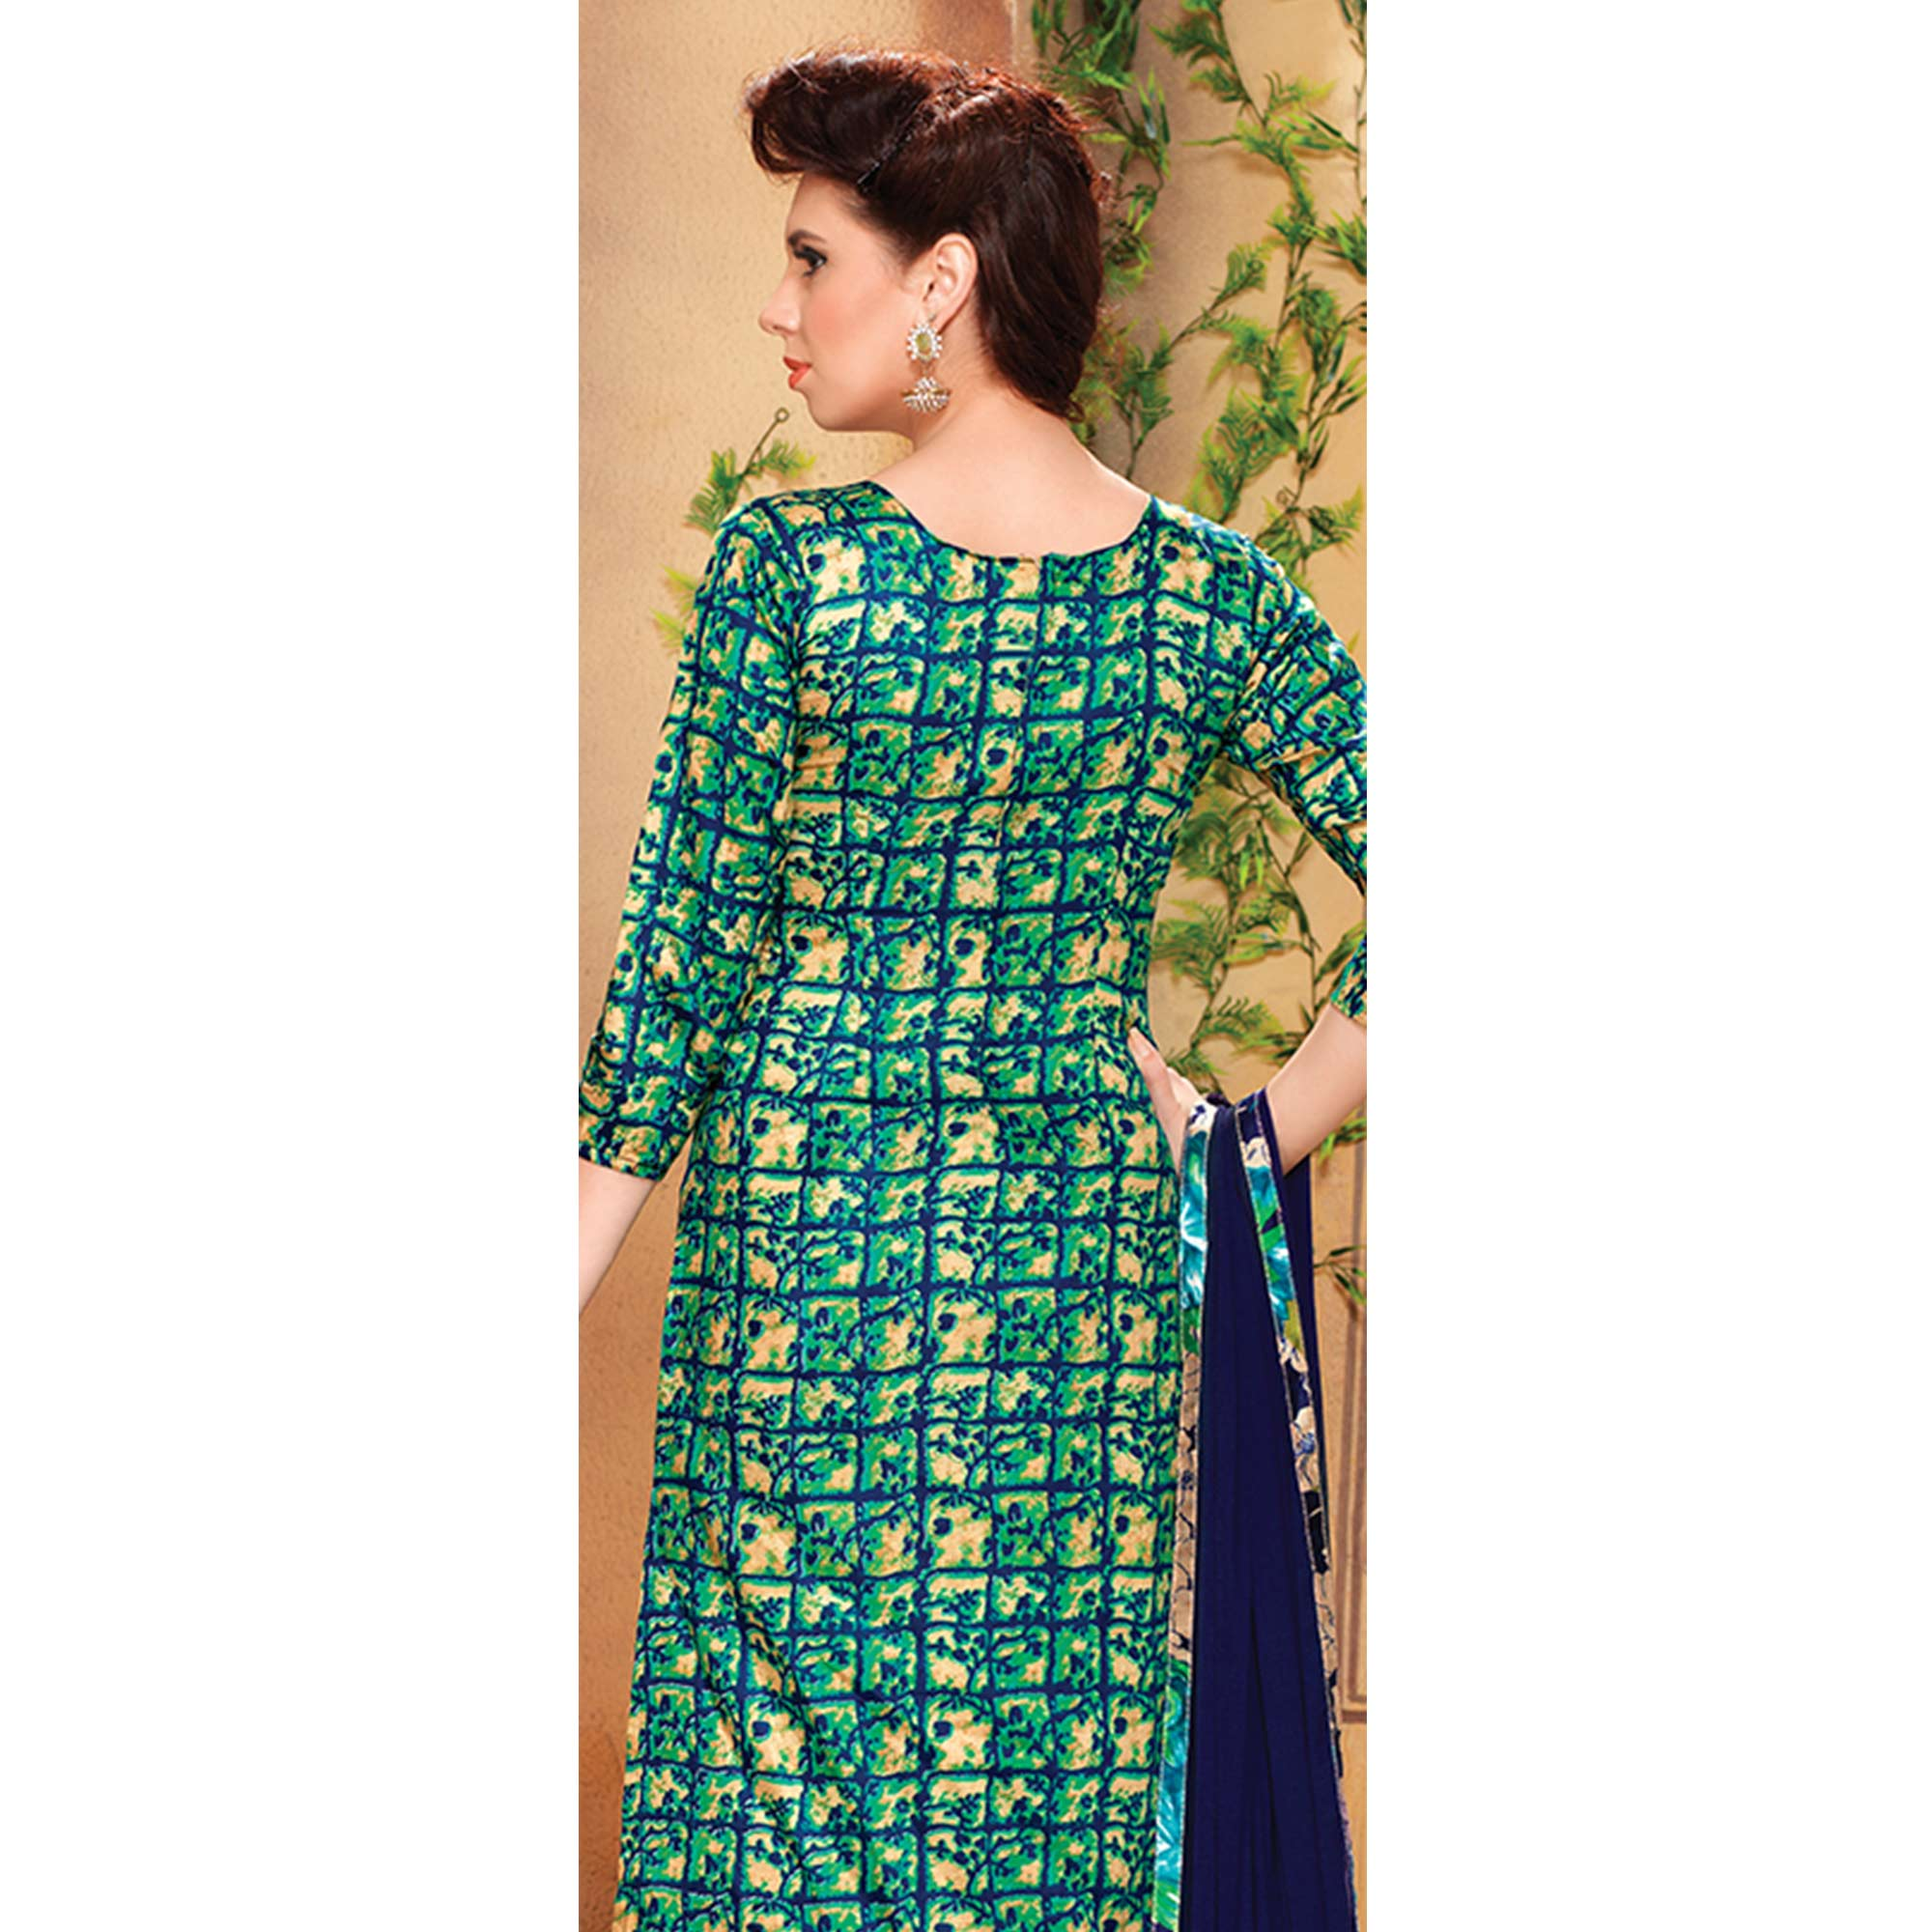 Sensational Green Colored Party Wear Embroidered Cotton Dress Material